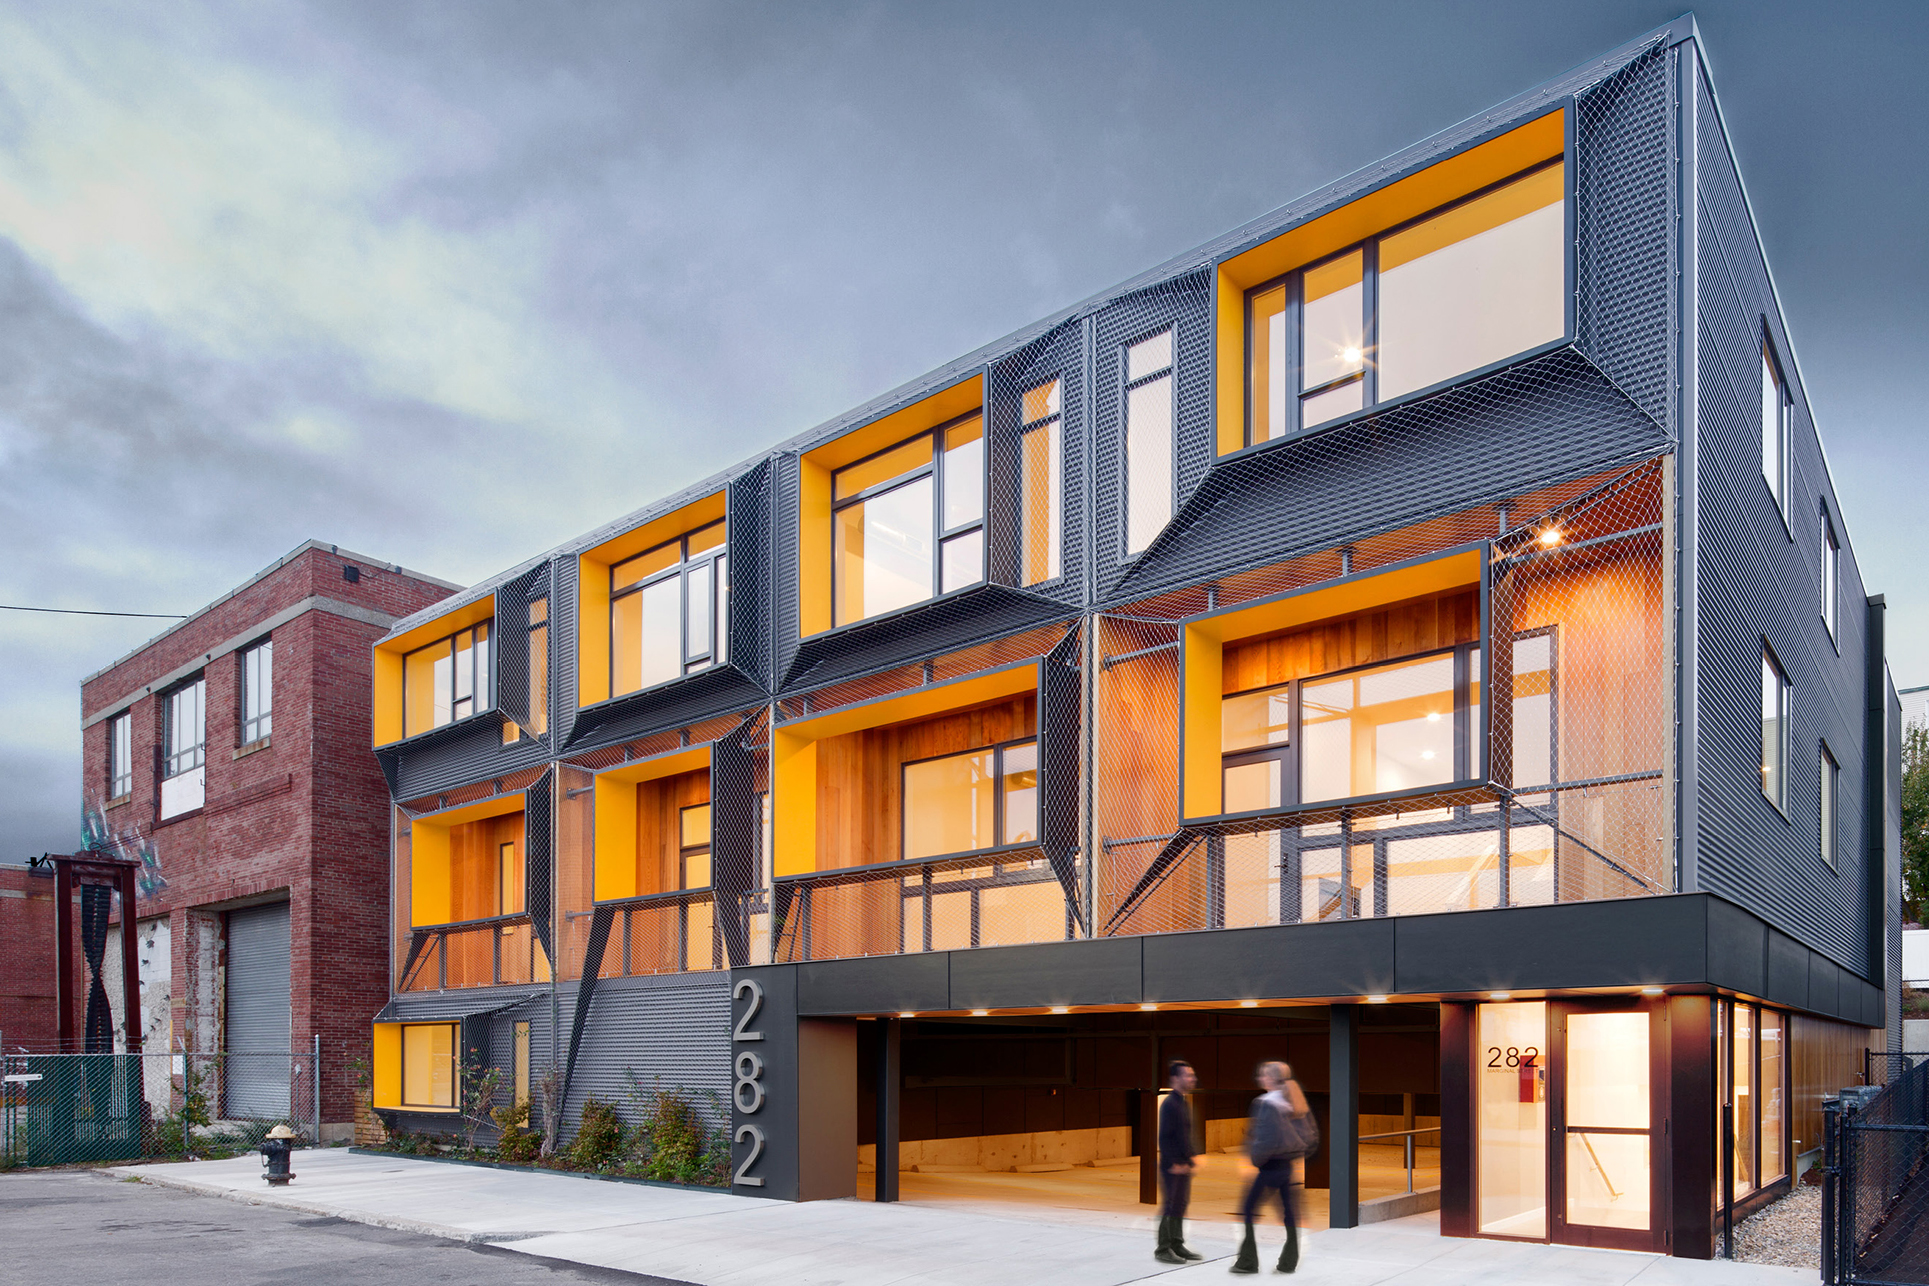 Marginal street lofts residential architect merge for Residential architect